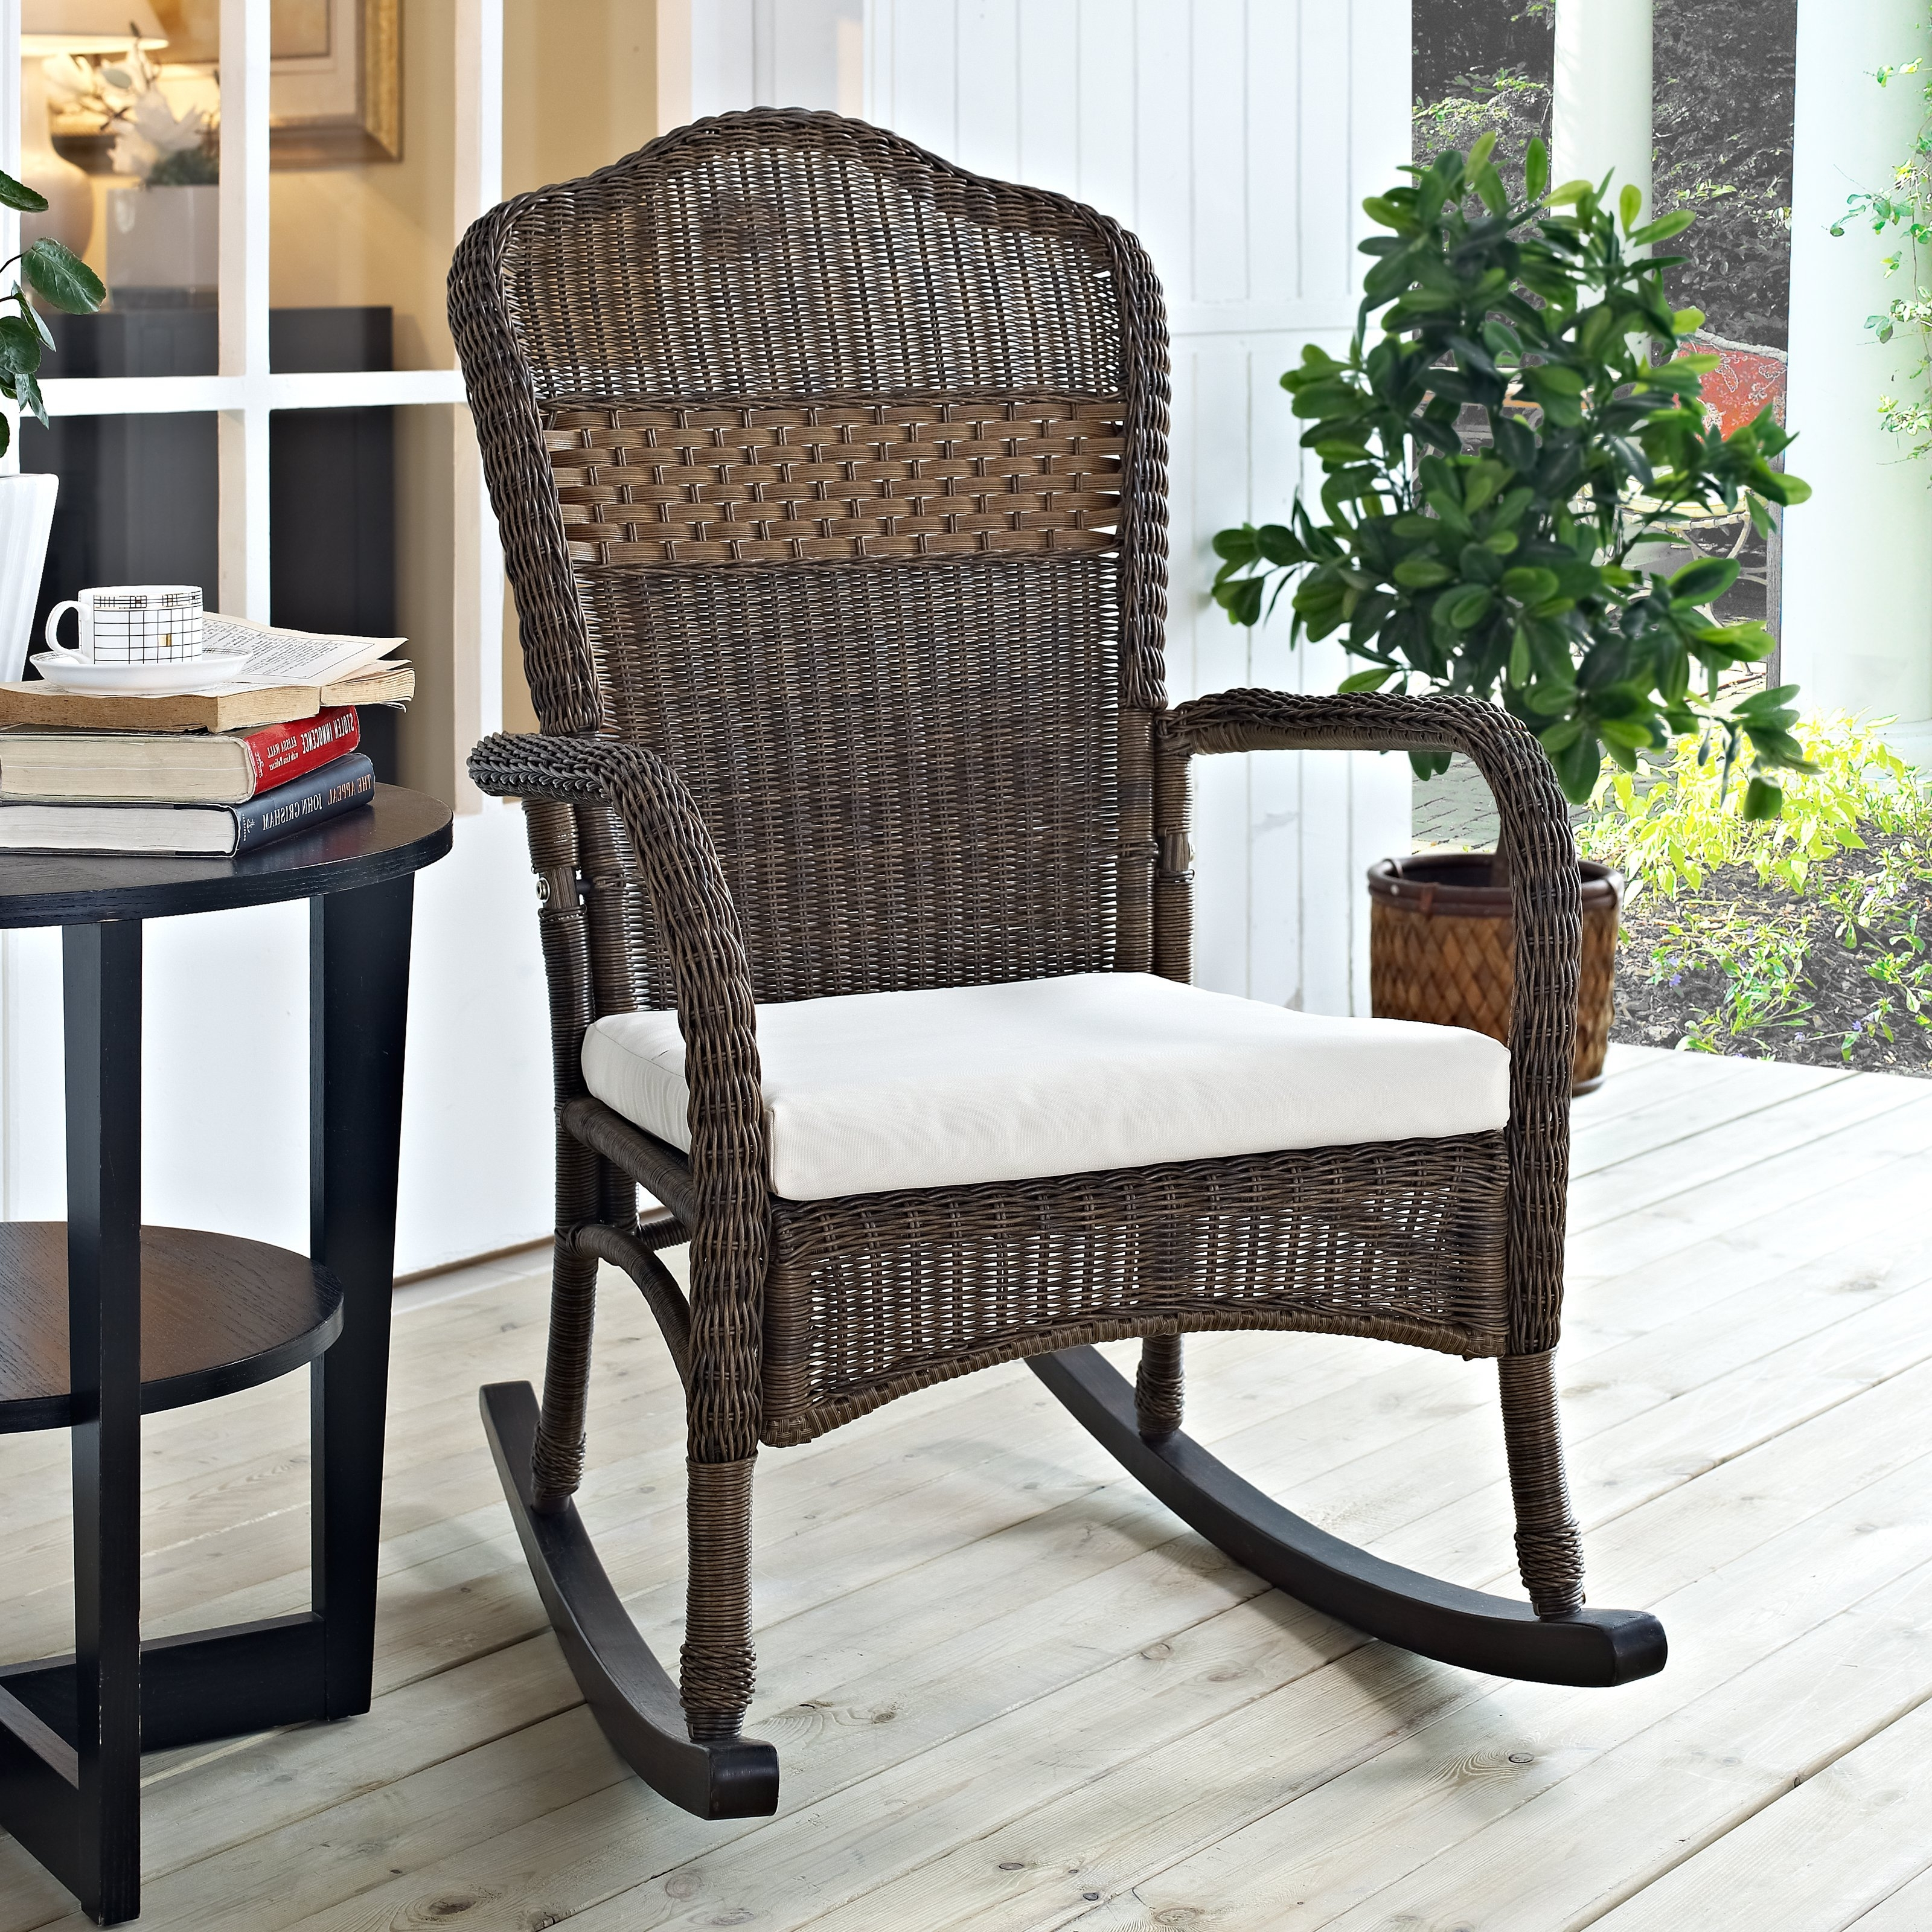 Outdoor Wicker Rocking Chairs In Well Liked Coral Coast Mocha Resin Wicker Rocking Chair With Beige Cushion (View 9 of 20)